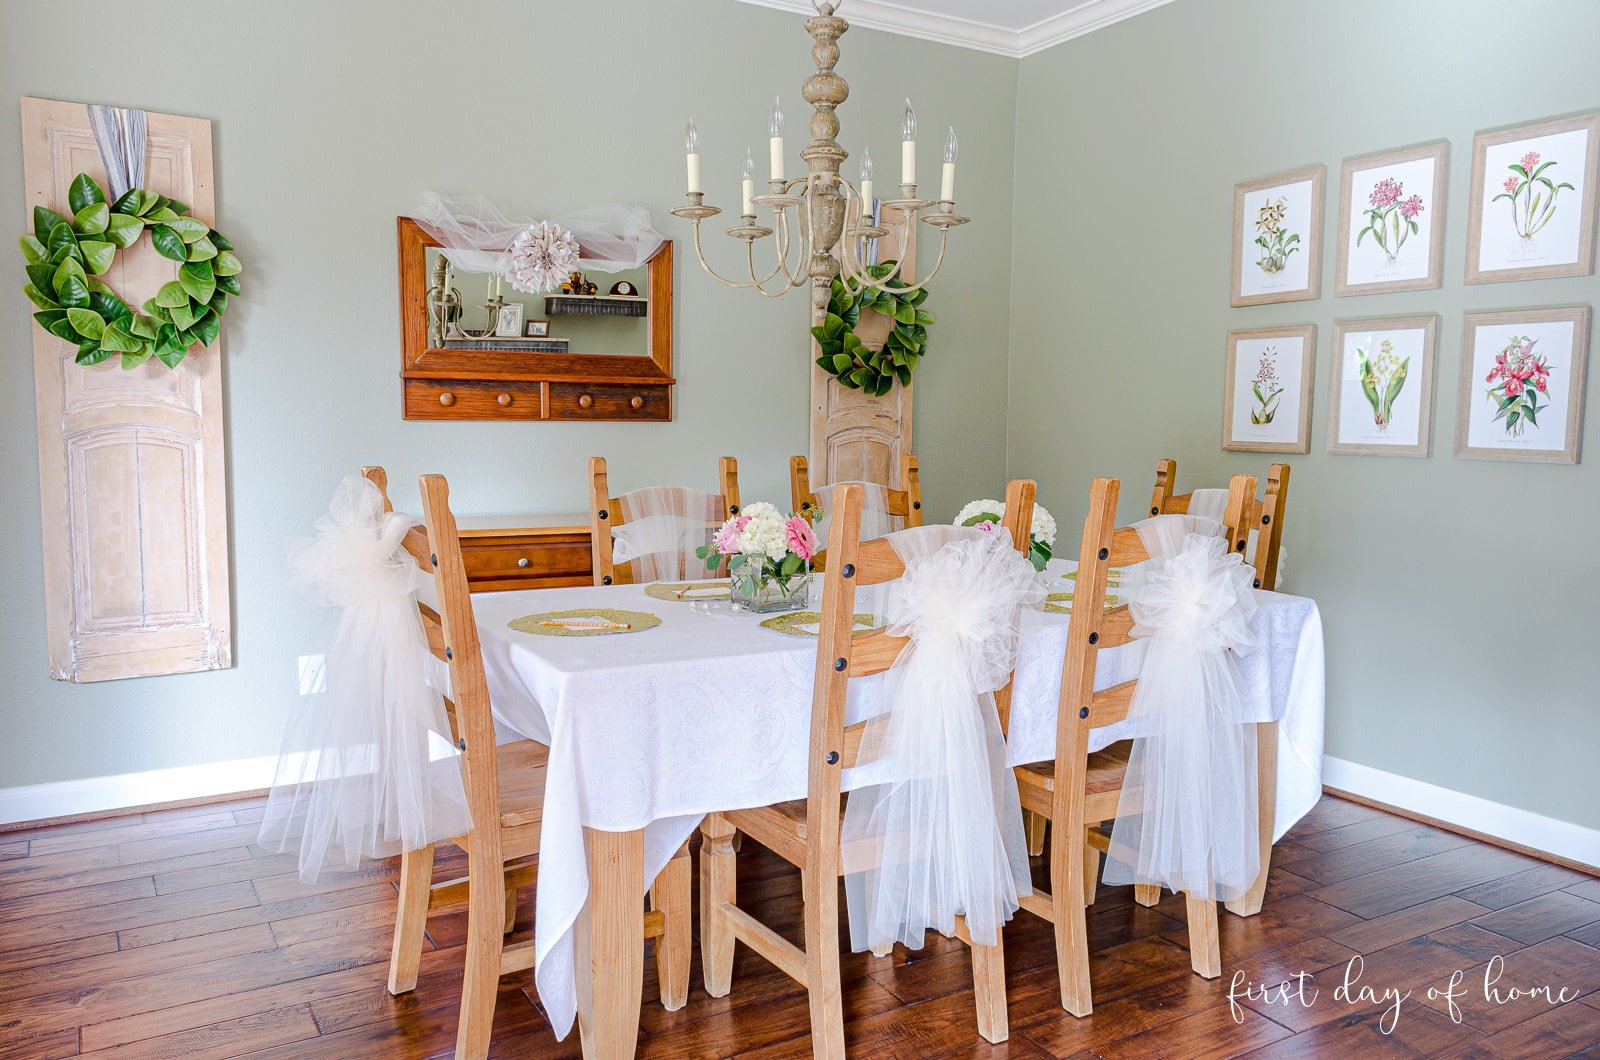 DIY bridal shower decorations for table and chairs in breakfast room